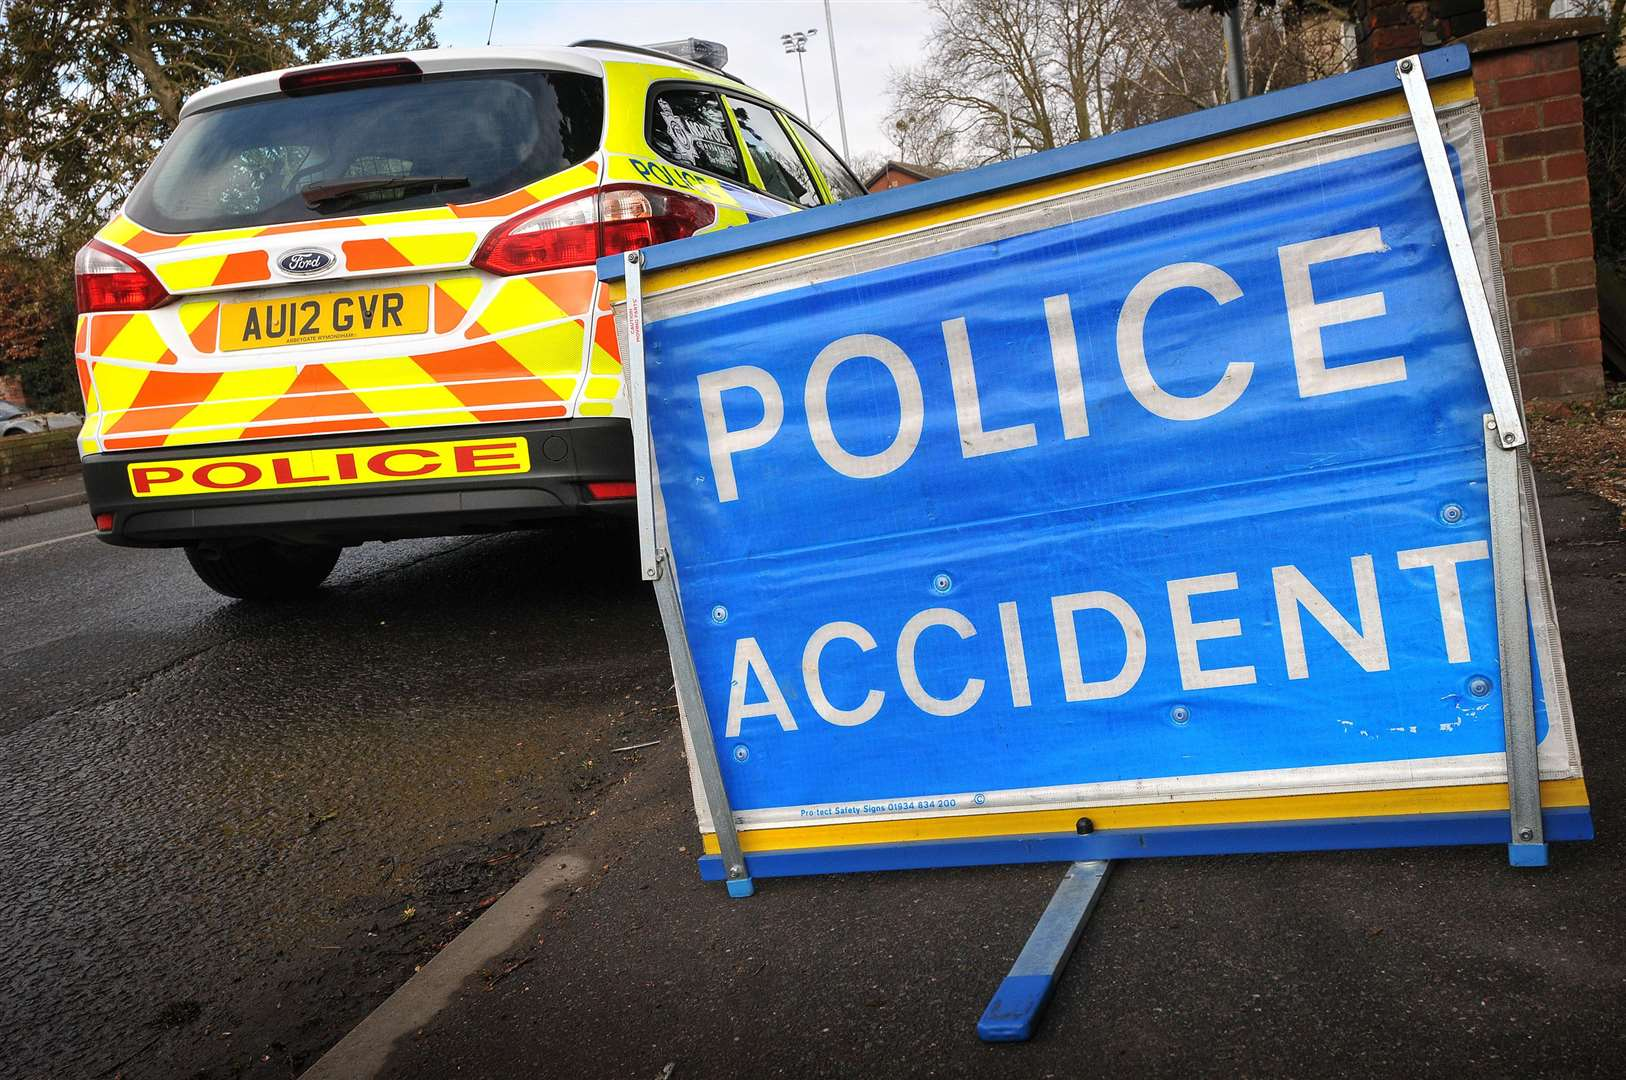 Police on the scene of an RTC - Norfolk Police accident sign. (50357933)